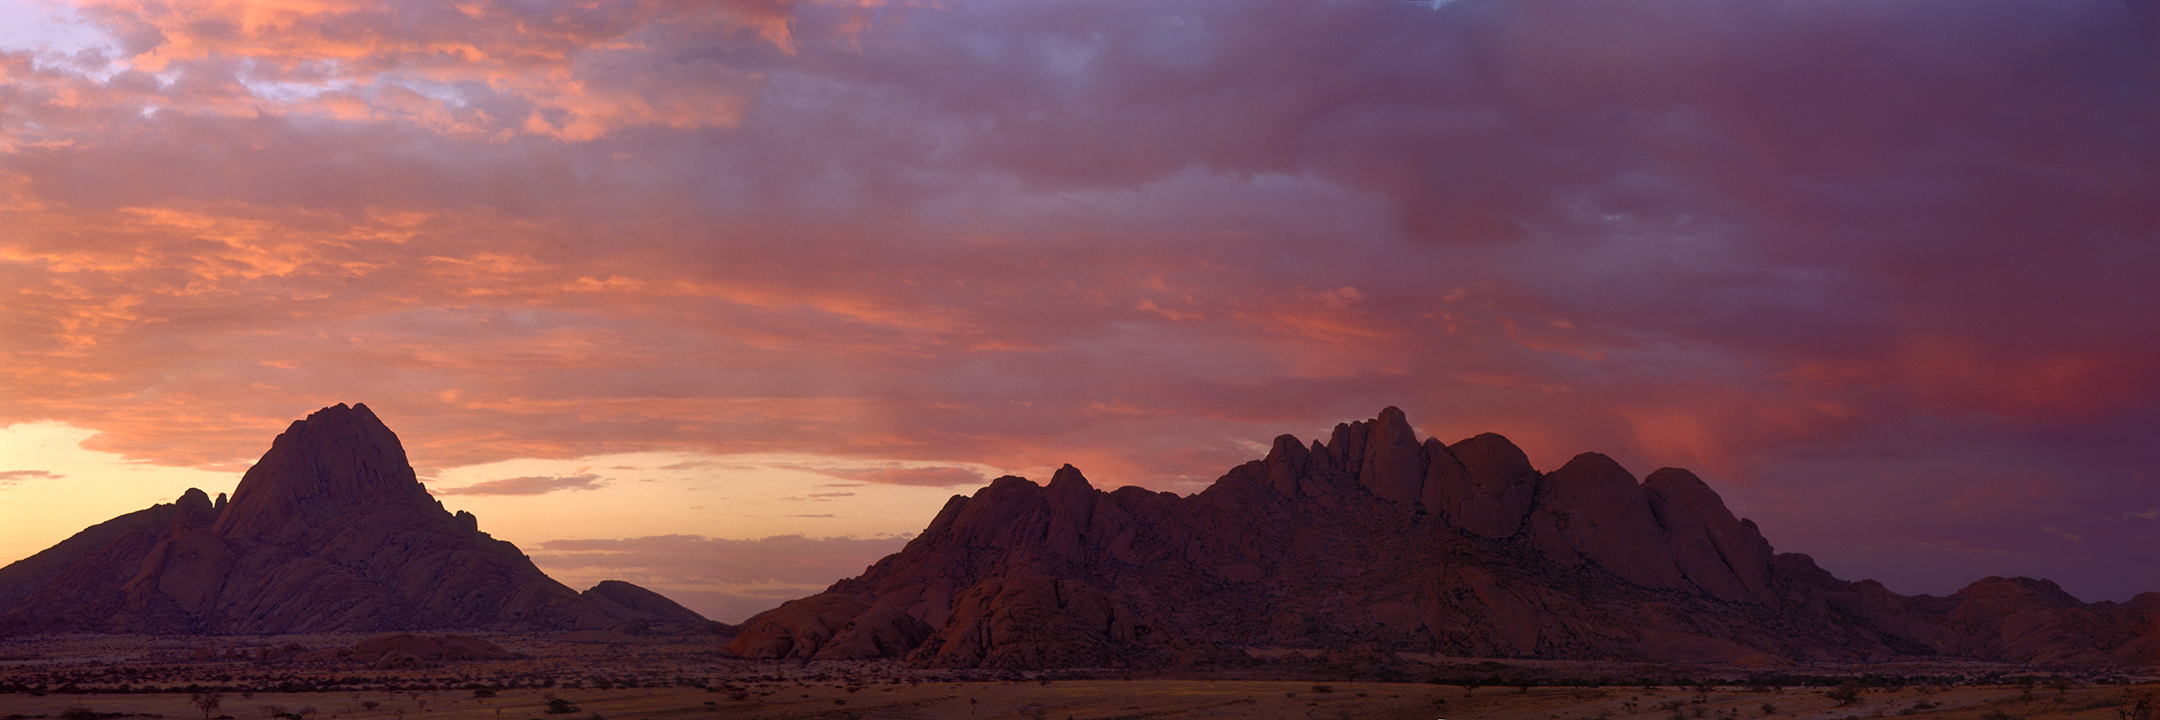 Inselberg Spitzkoppe bei Sonnenaufgang mit rot glühenden Wolken, Namibia - island mountain mount spitzkoppe at sunrise with red glowing clouds, namibia